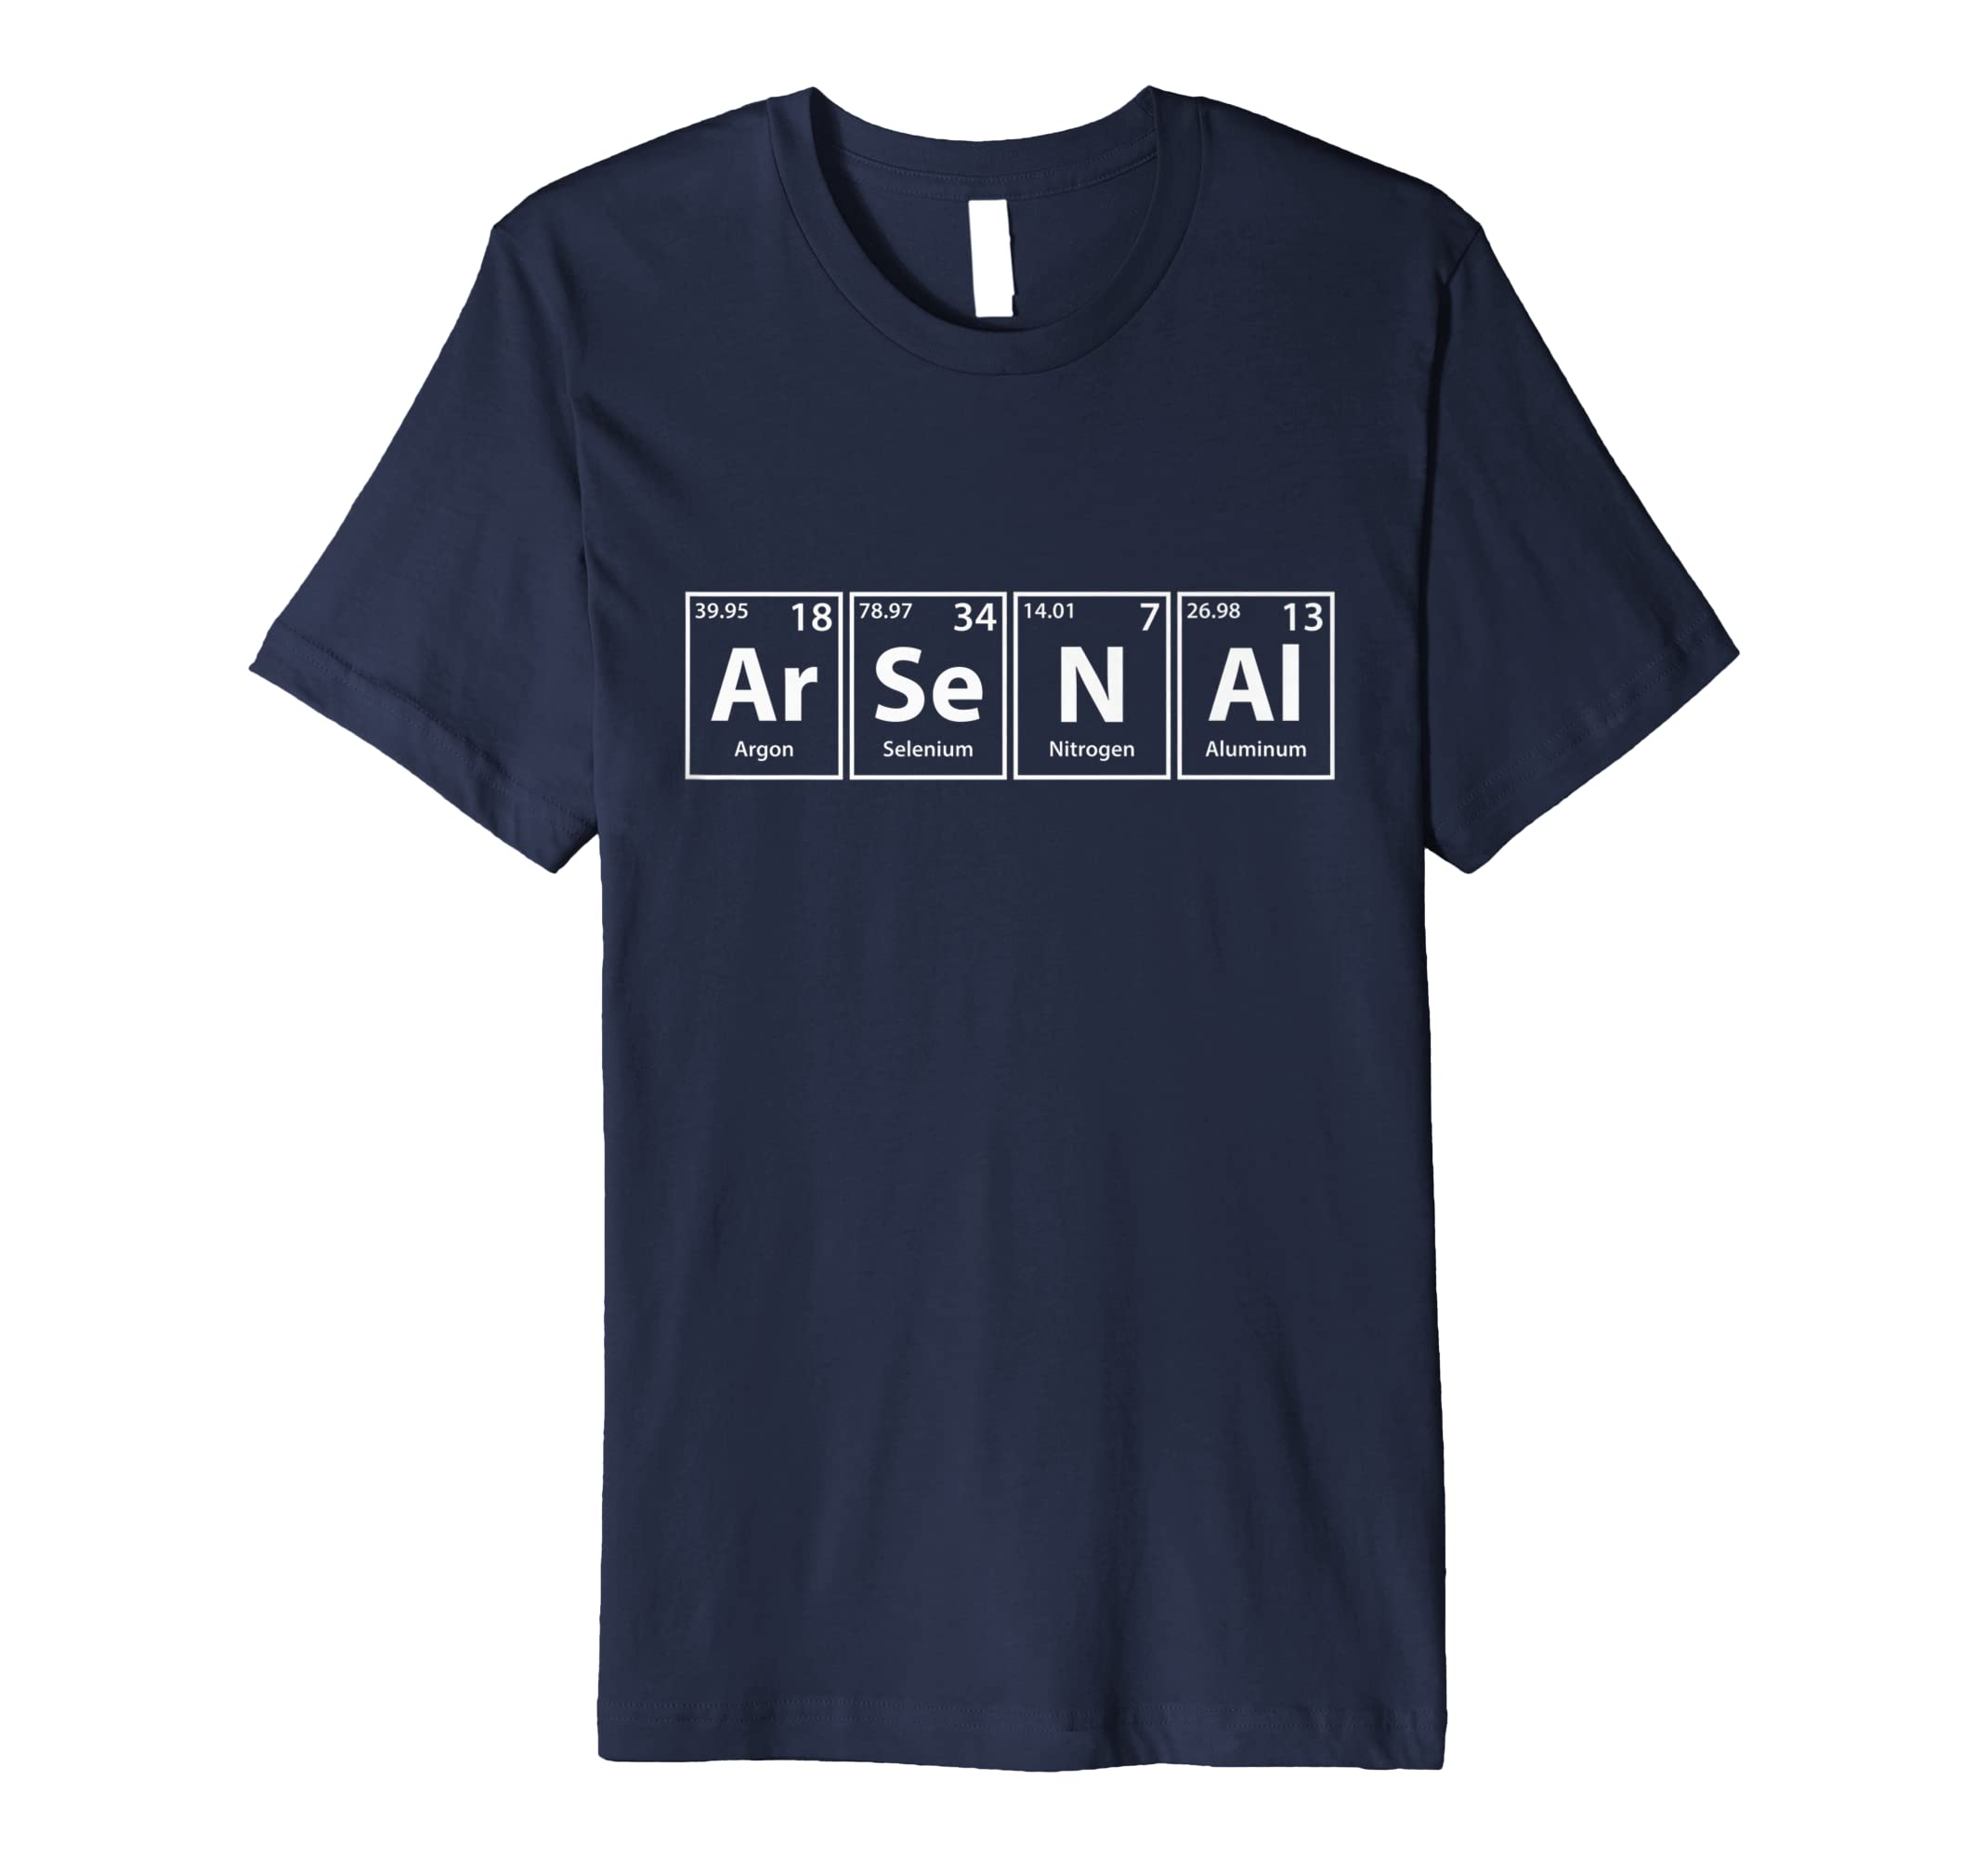 Ar Se N Al Periodic Table Elements Spelling T Shirt-azvn